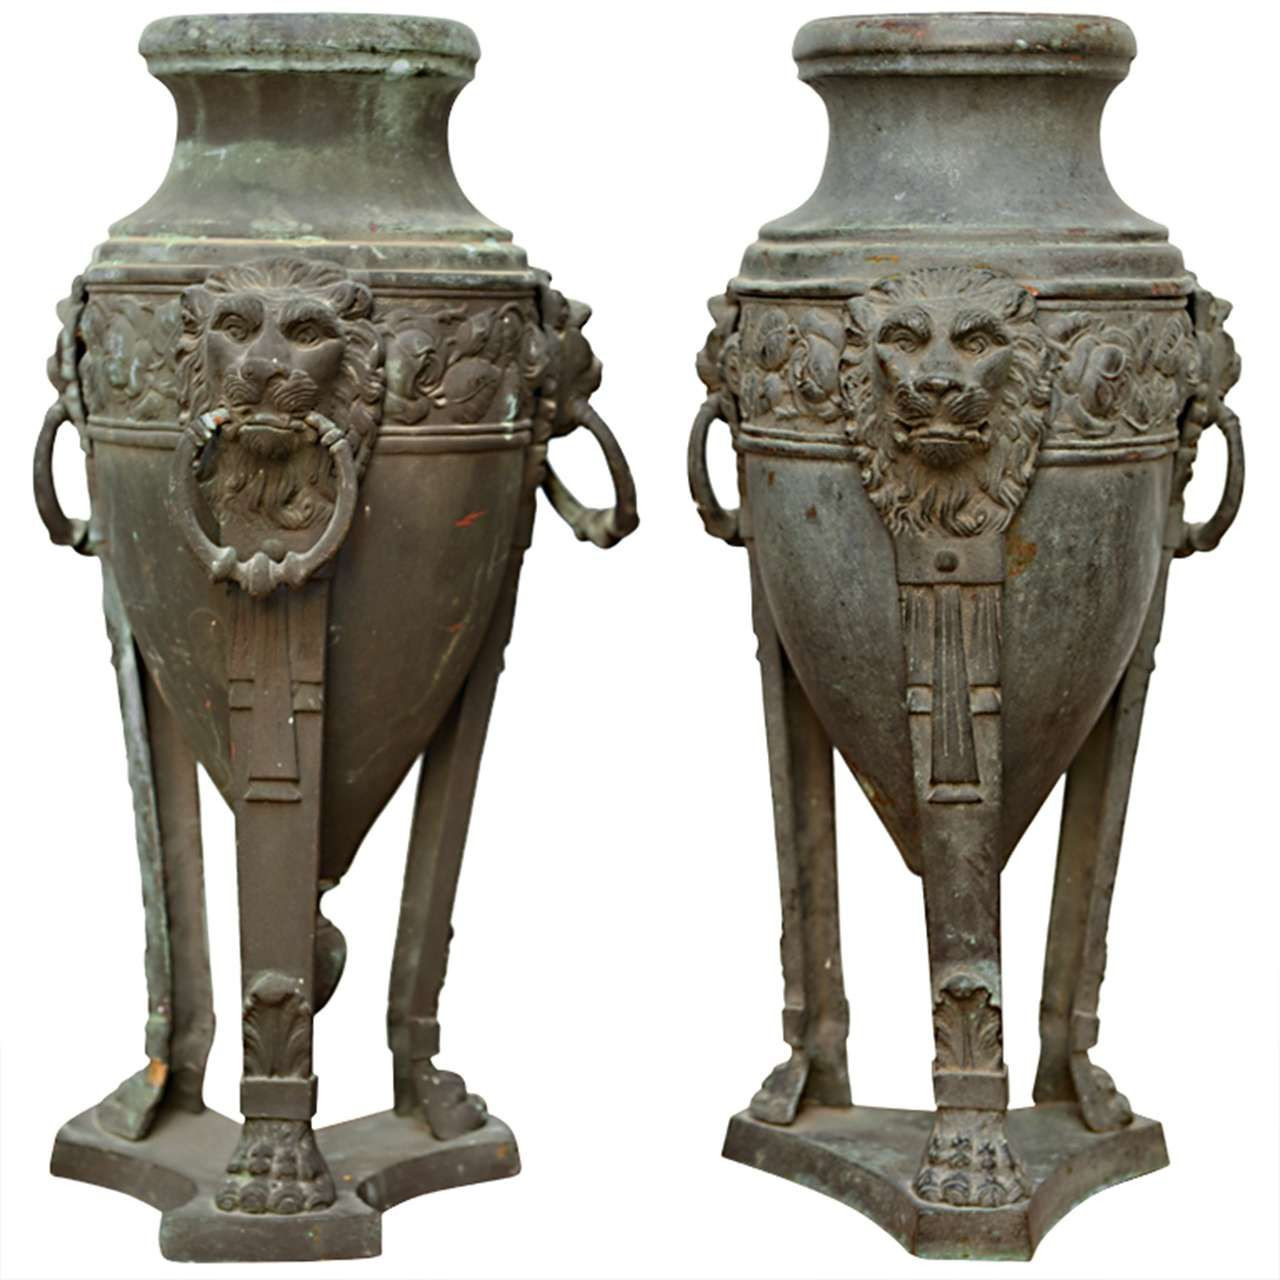 antique bronze vases and urns of pair of english patinated bronze athenienne form urns 19th century throughout pair of english patinated bronze athenienne form urns 19th century